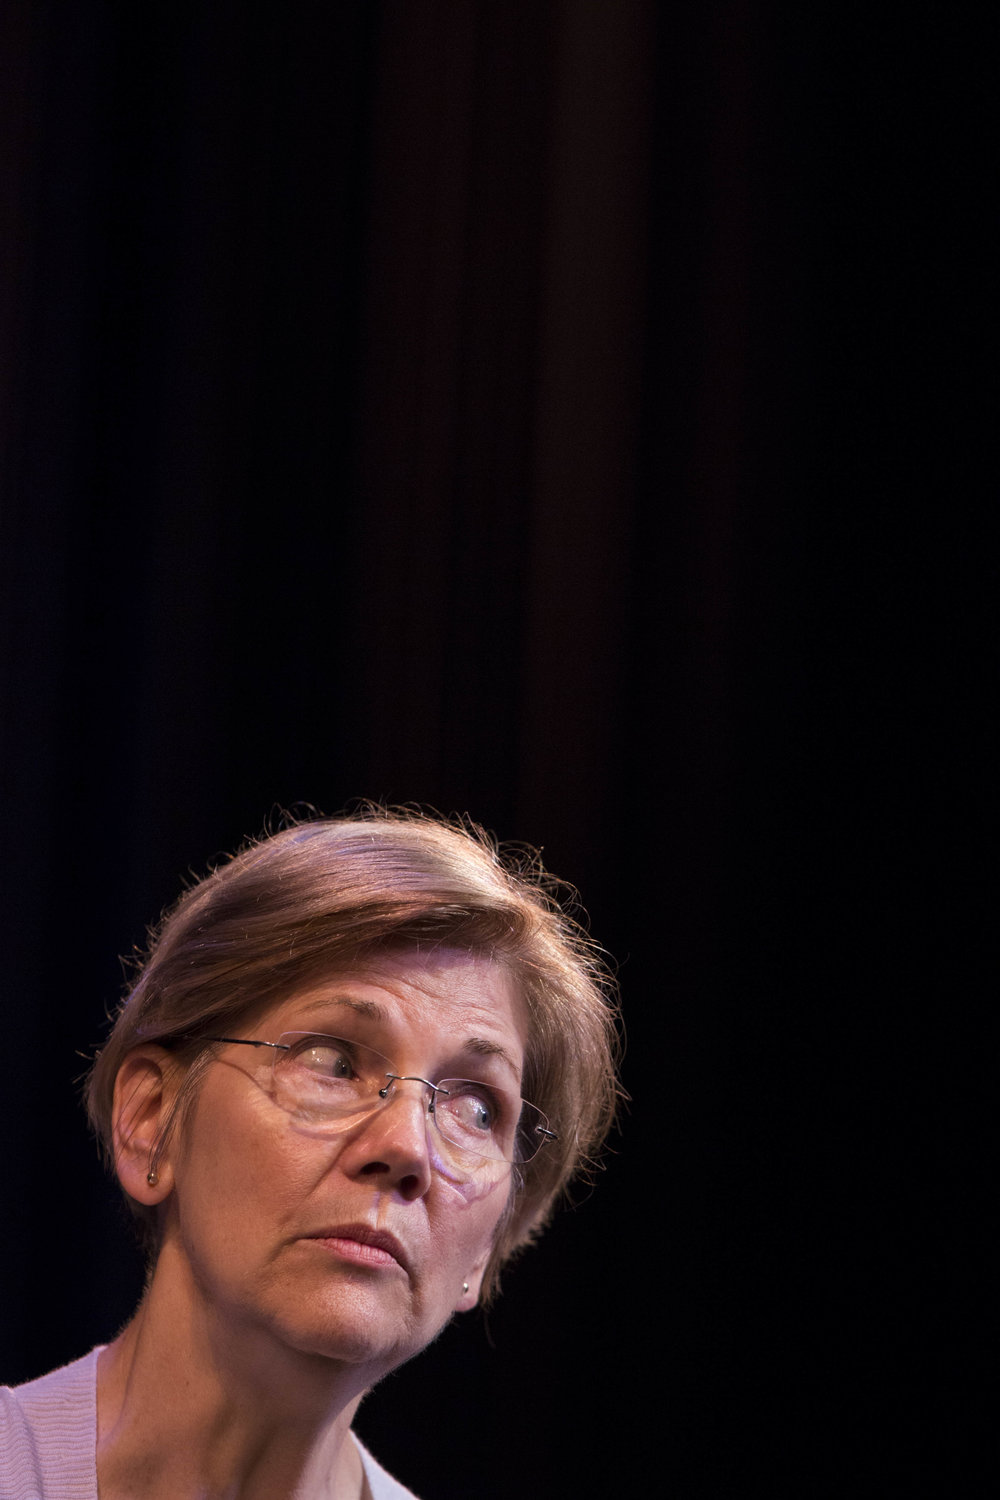 Senator Elizabeth Warren answers questions from the audience at the town hall-style meeting in the Tilden Arts Center at Cape Cod Community College on July 16, 2017.